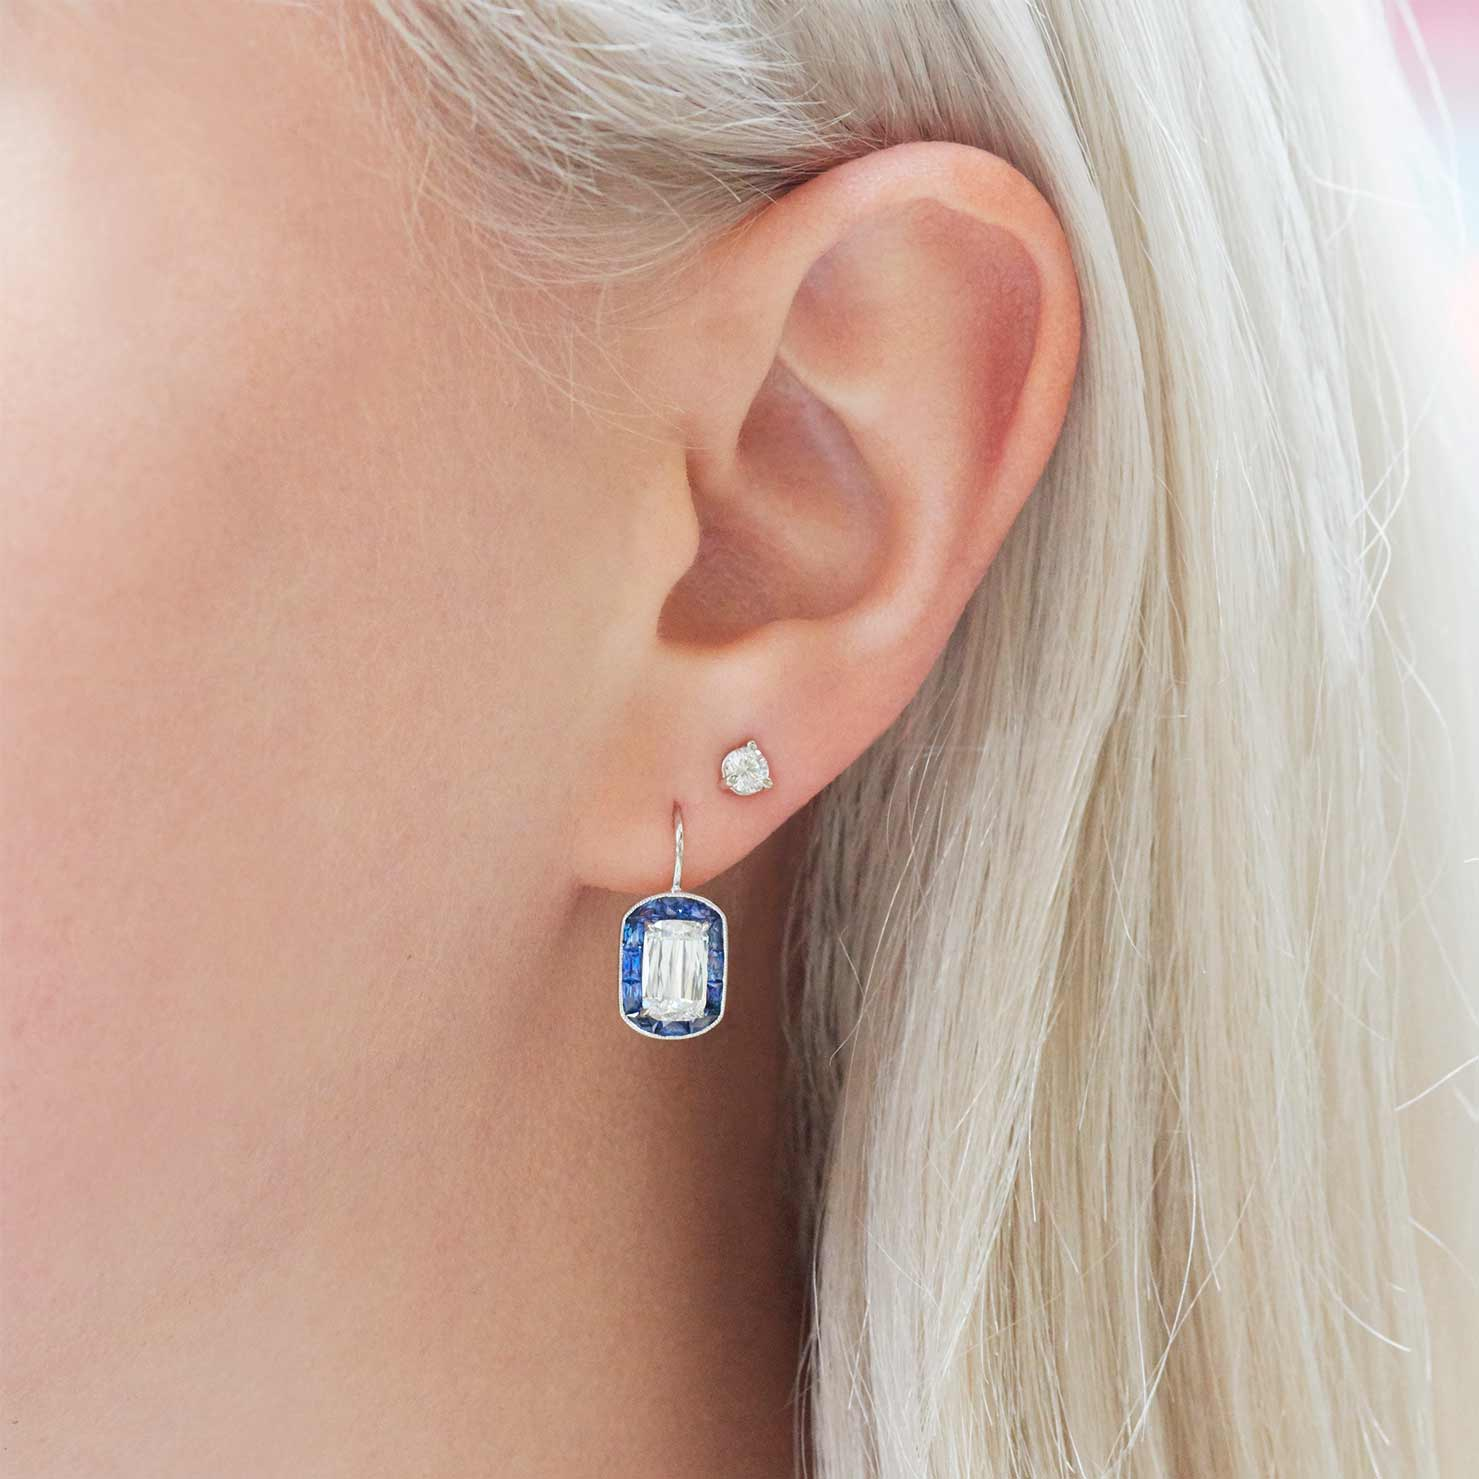 diamond earrings on French hooks with sapphire halo.